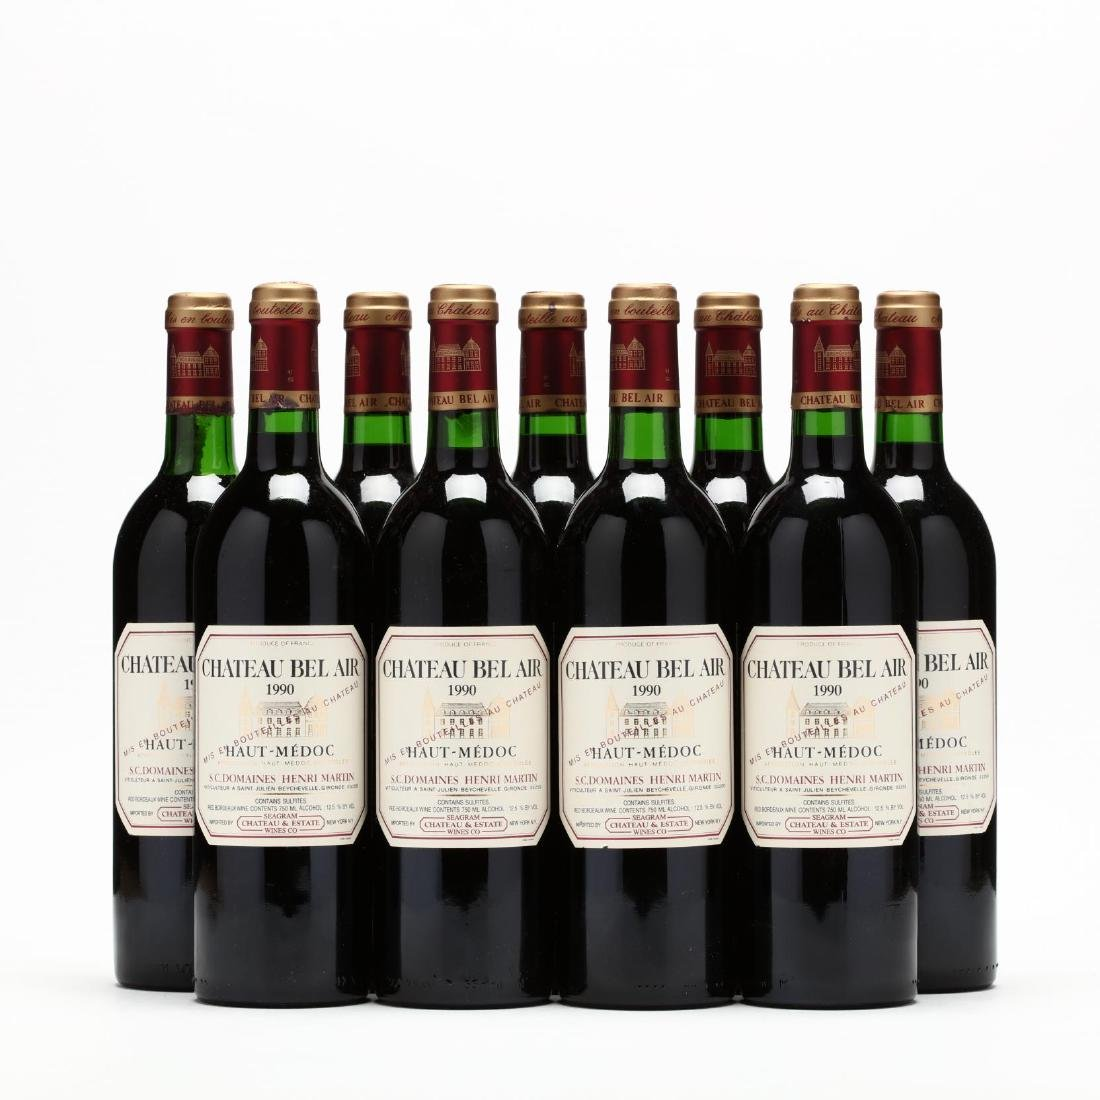 Chateau Bel Air - Vintage 1990